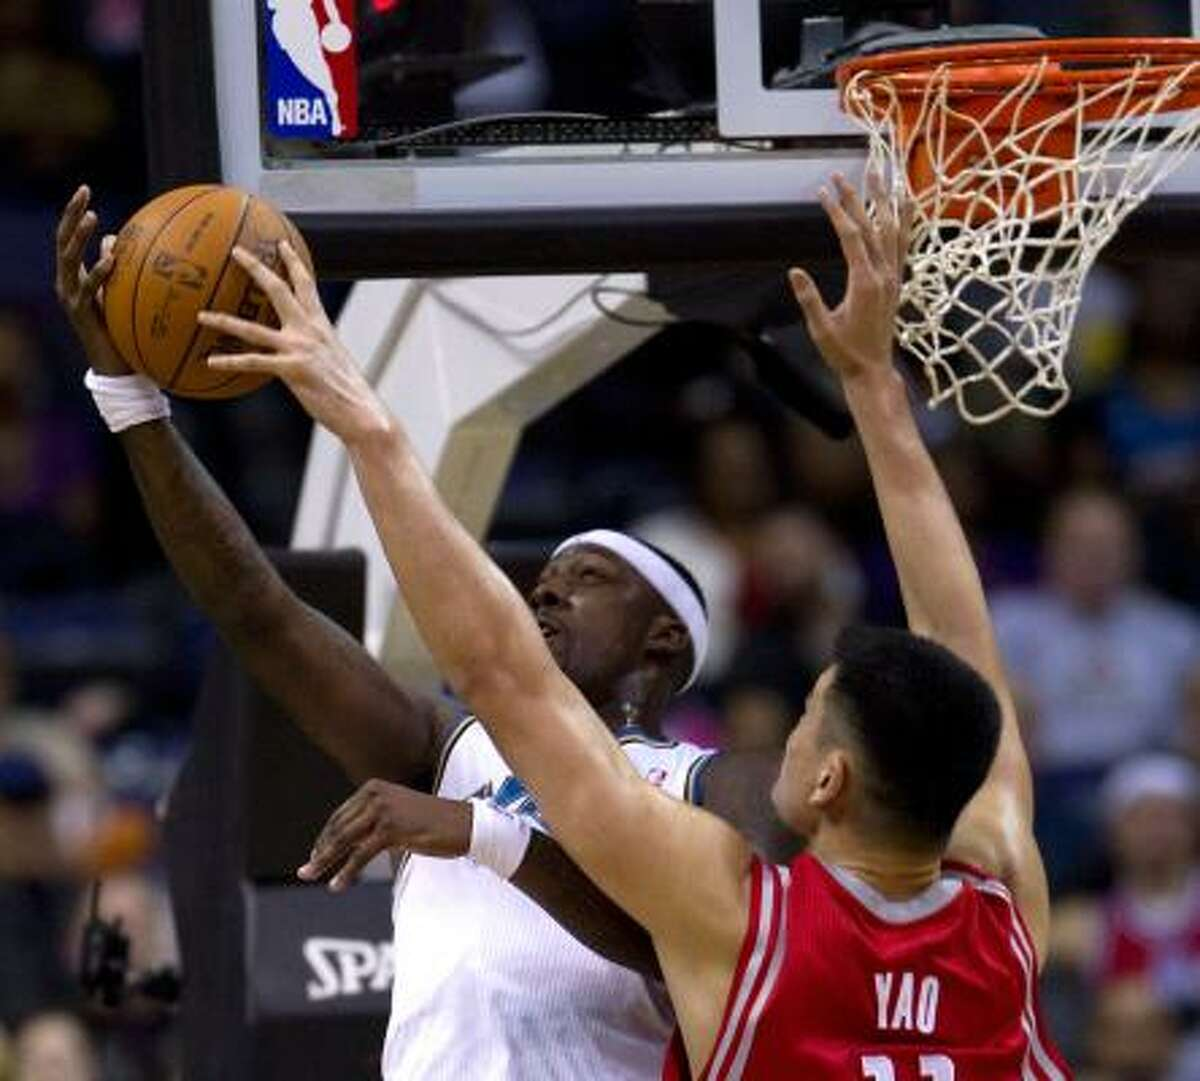 Nov. 10: Wizards 98, Rockets 1 Rockets center Yao Ming (11) blocks a shot from Wizards power forward Andray Blatche during Wednesday's game. The Rockets fell to 1-6 with the loss.